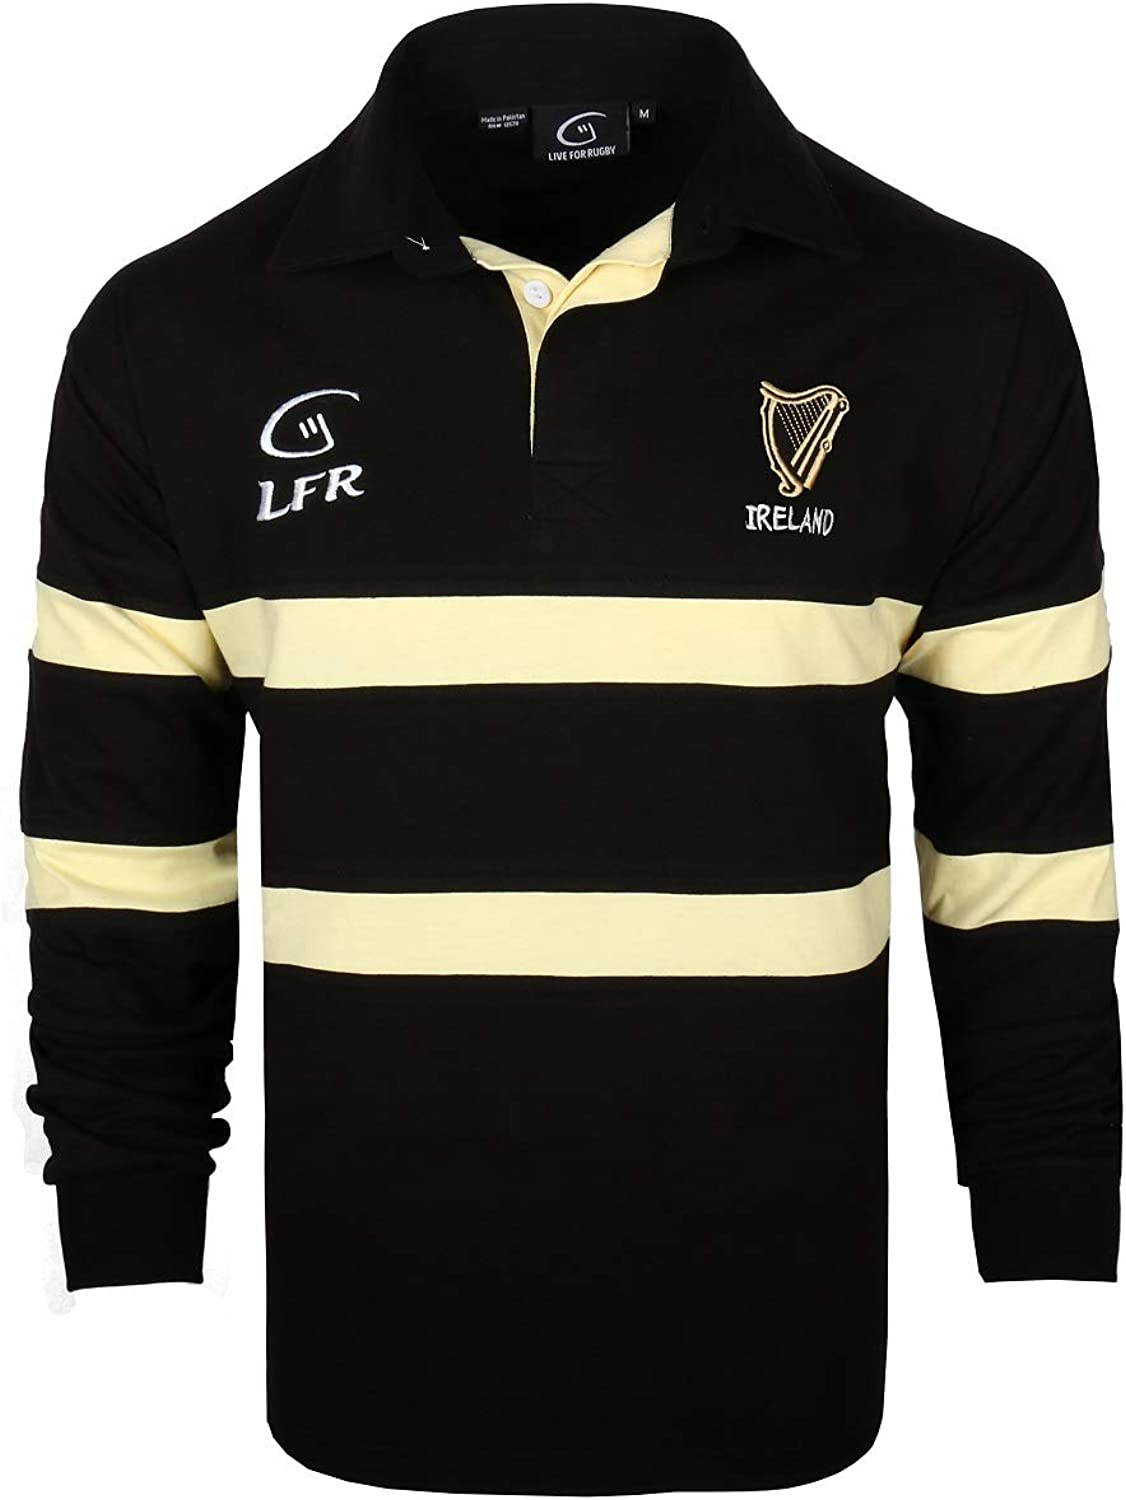 Malham Long Sleeve Black and Cream Harp Rugby Jersey